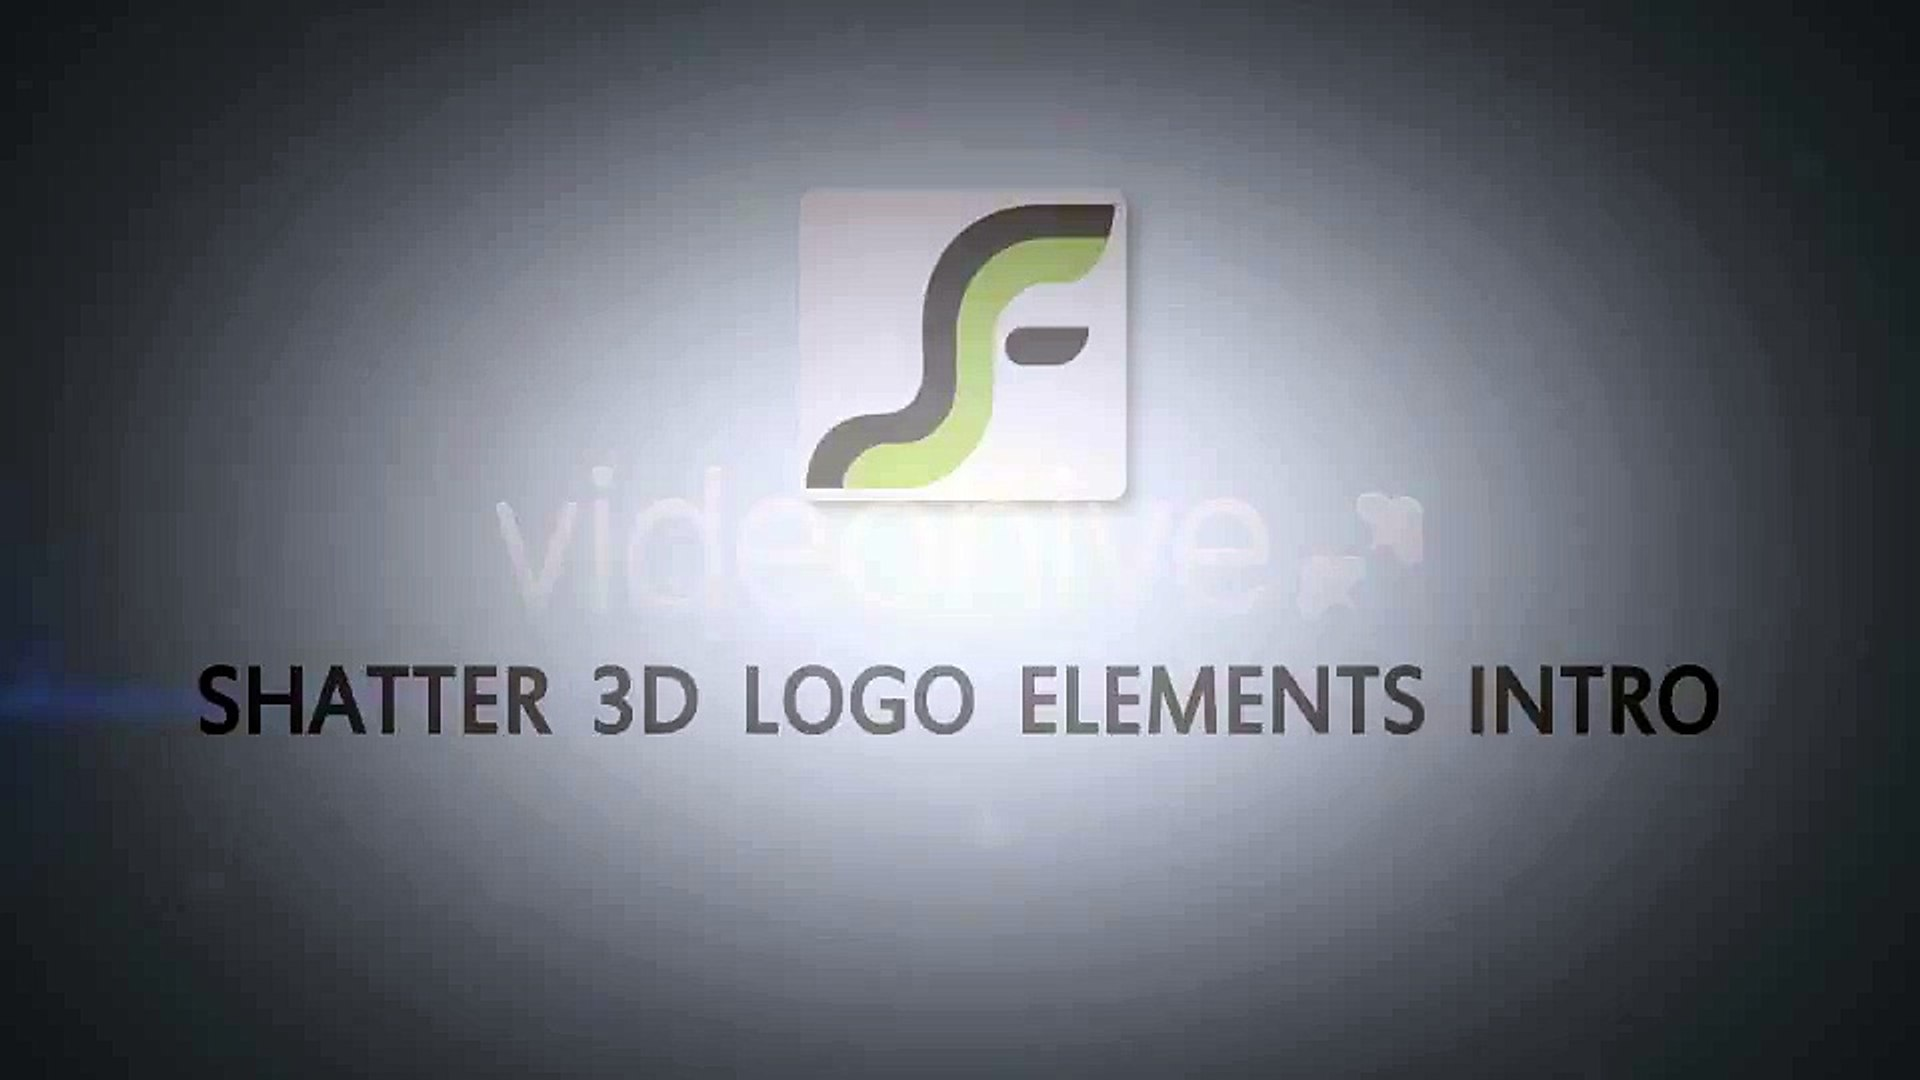 After Effects Project Files - Shatter 3D Logo Elements Intro - VideoHive 3620839